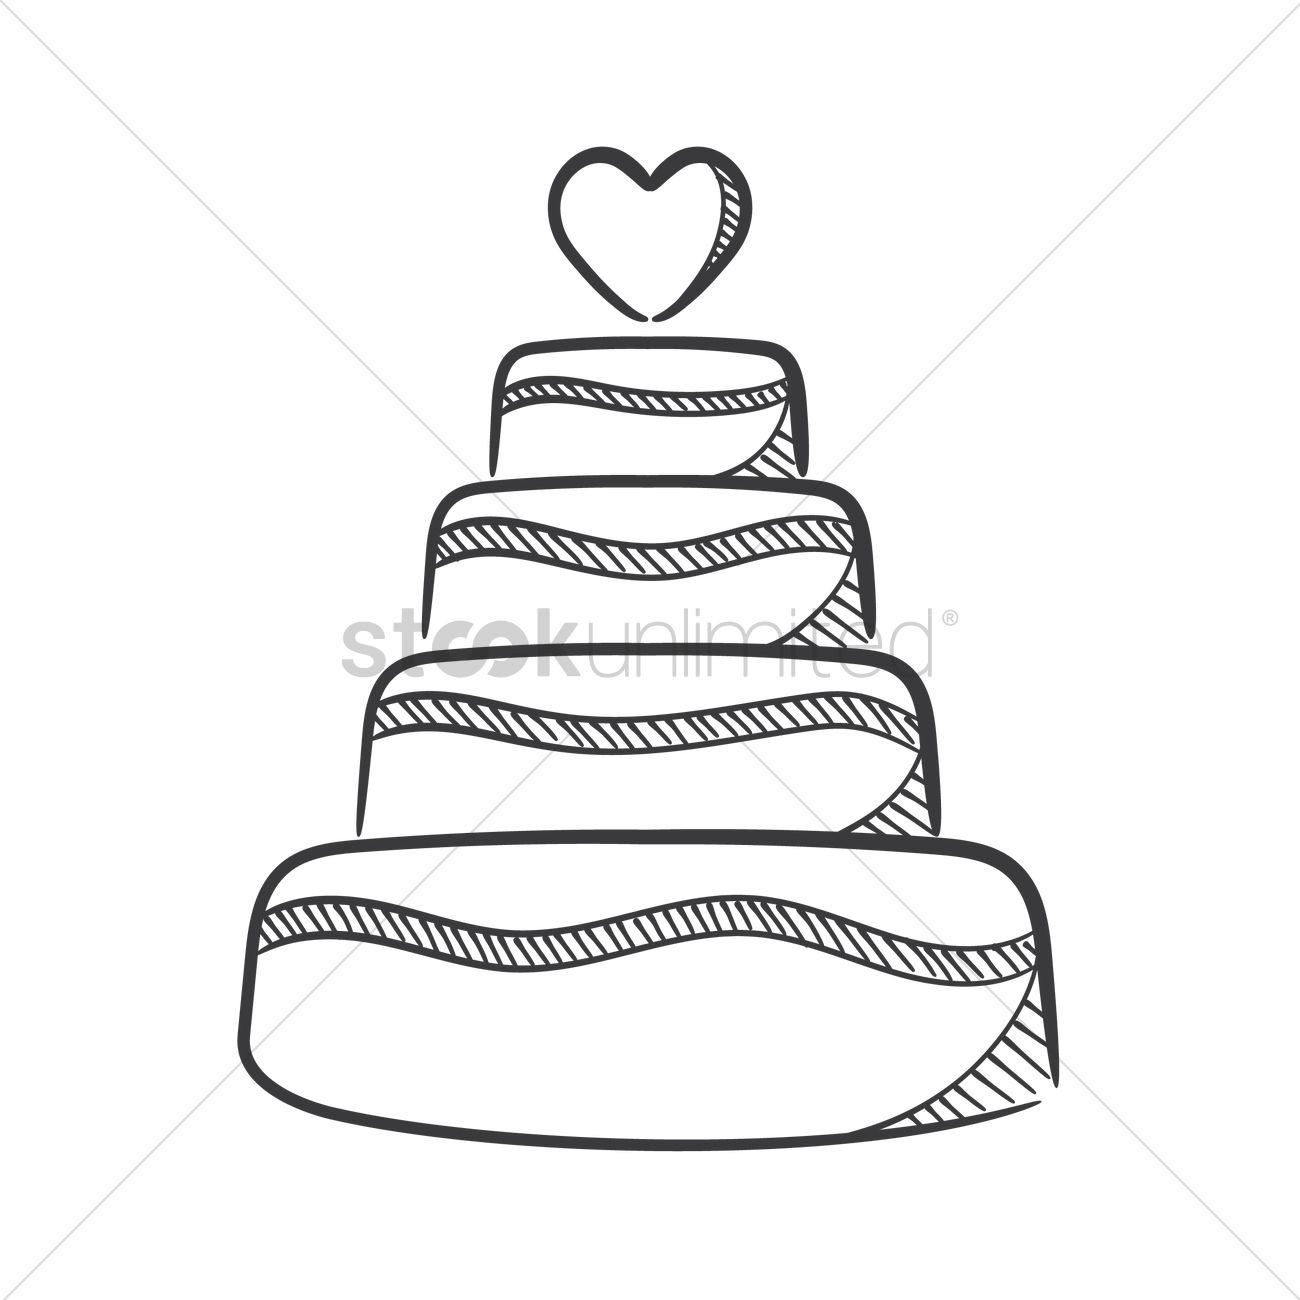 Cake Drawing Clip Art : Wedding cake Vector Image - 1637213 StockUnlimited